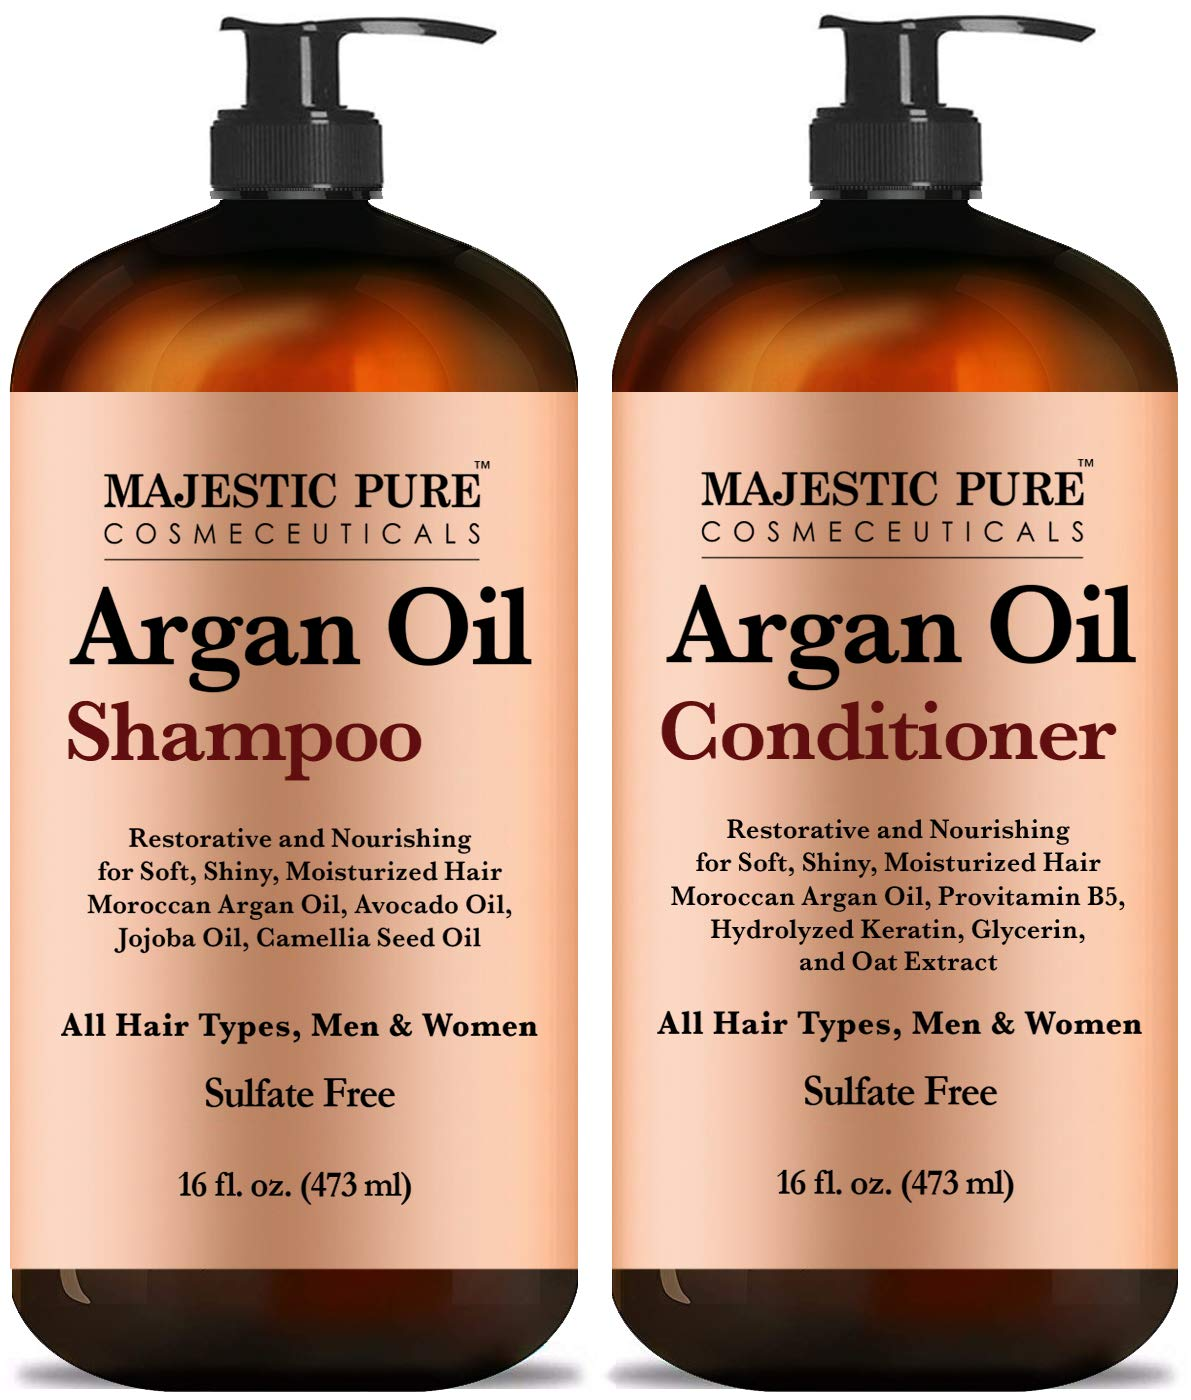 Argan Oil Shampoo and Conditioner, from Majestic Pure, Improve formula Sulfate Free, Vitamin Enriched, Volumizing & Gentle Hair Restoration Formula for Daily Use, for Men and Women, 16 fl oz Each by Majestic Pure